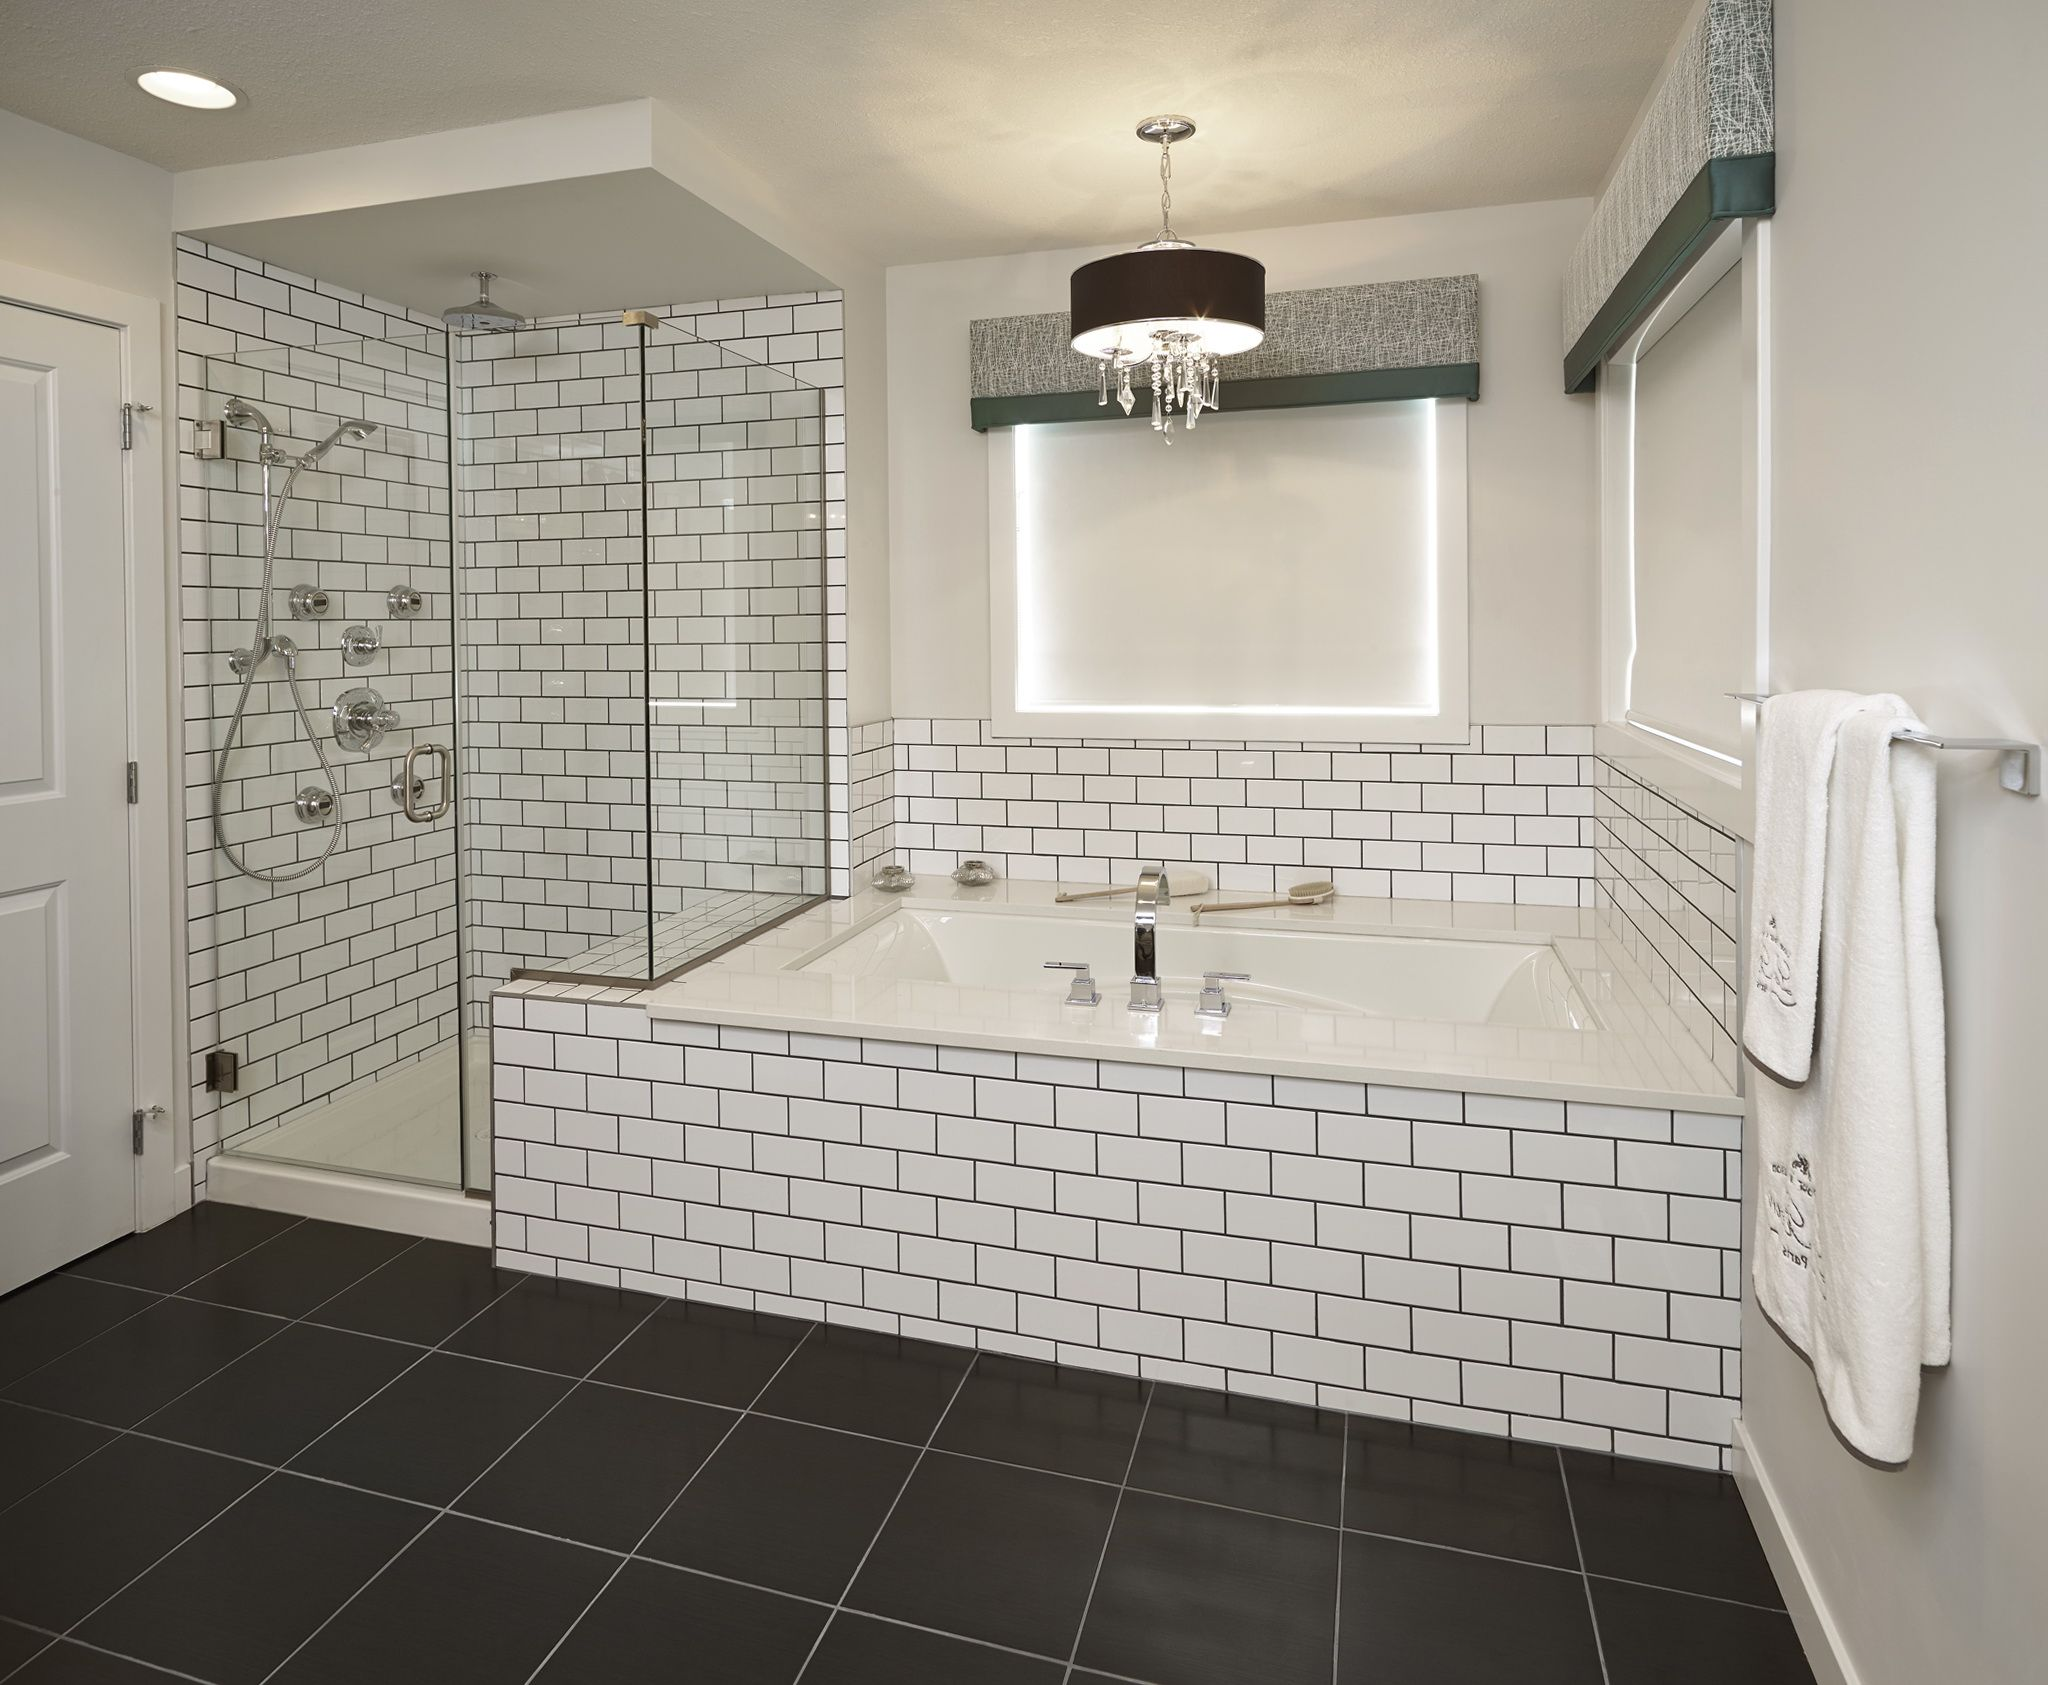 Subway Tile Bathroom Black Grout Bathroom Pinterest Black Grout Bathroom Black And Grout